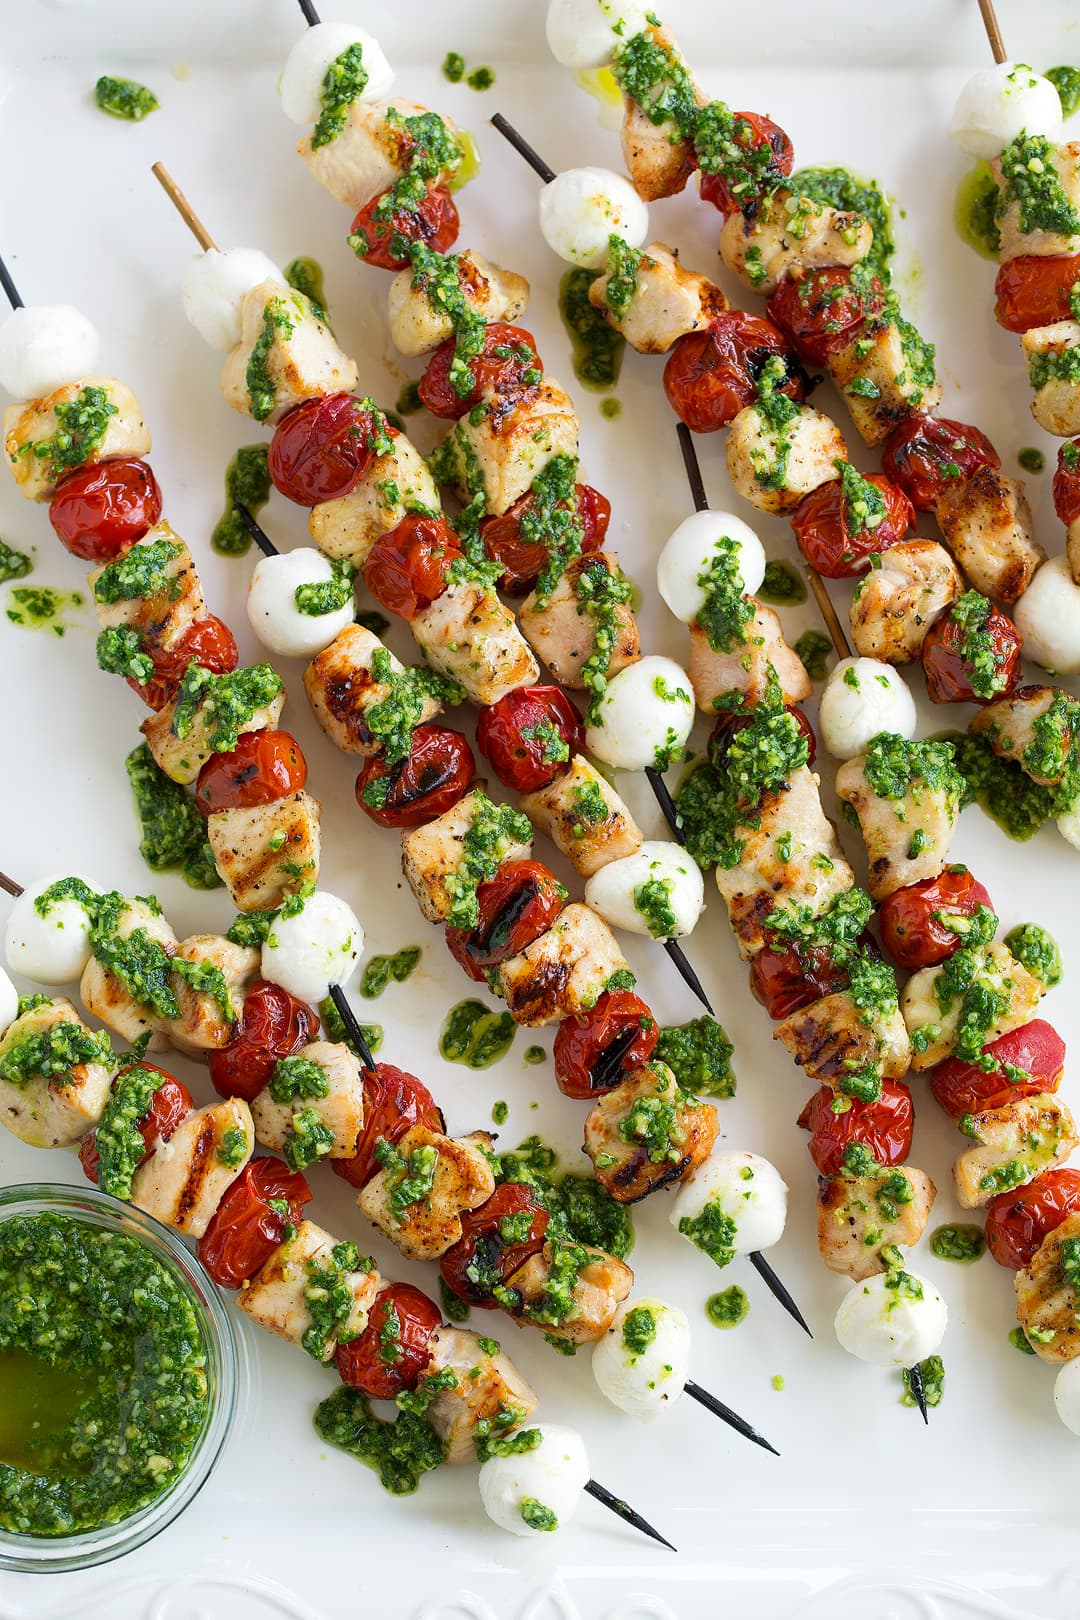 Chicken Caprese Skewers drizzled with homemade pesto